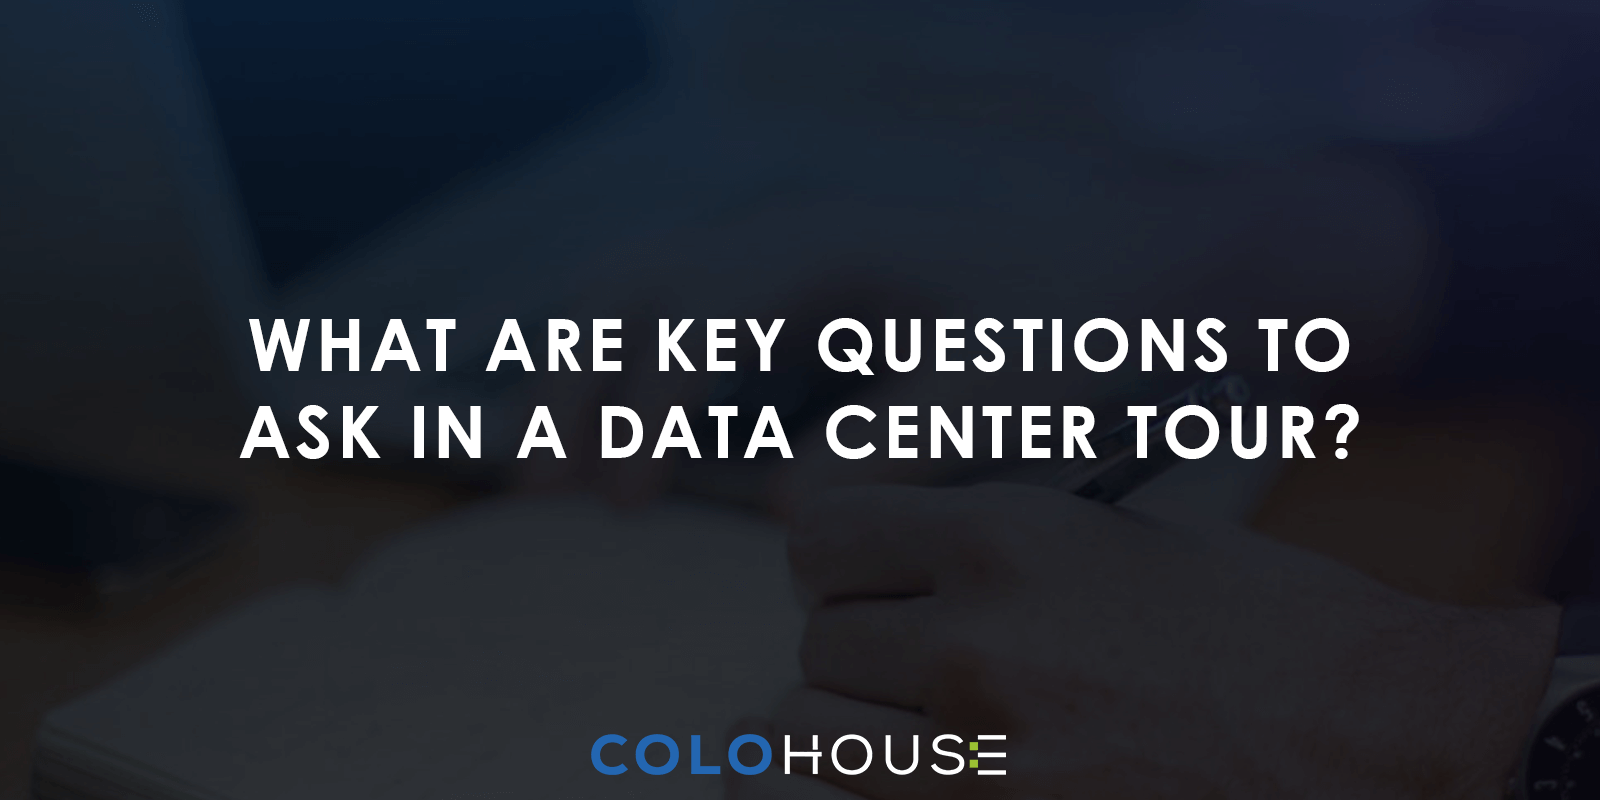 Blog header: What are key questions to ask in data center tour?